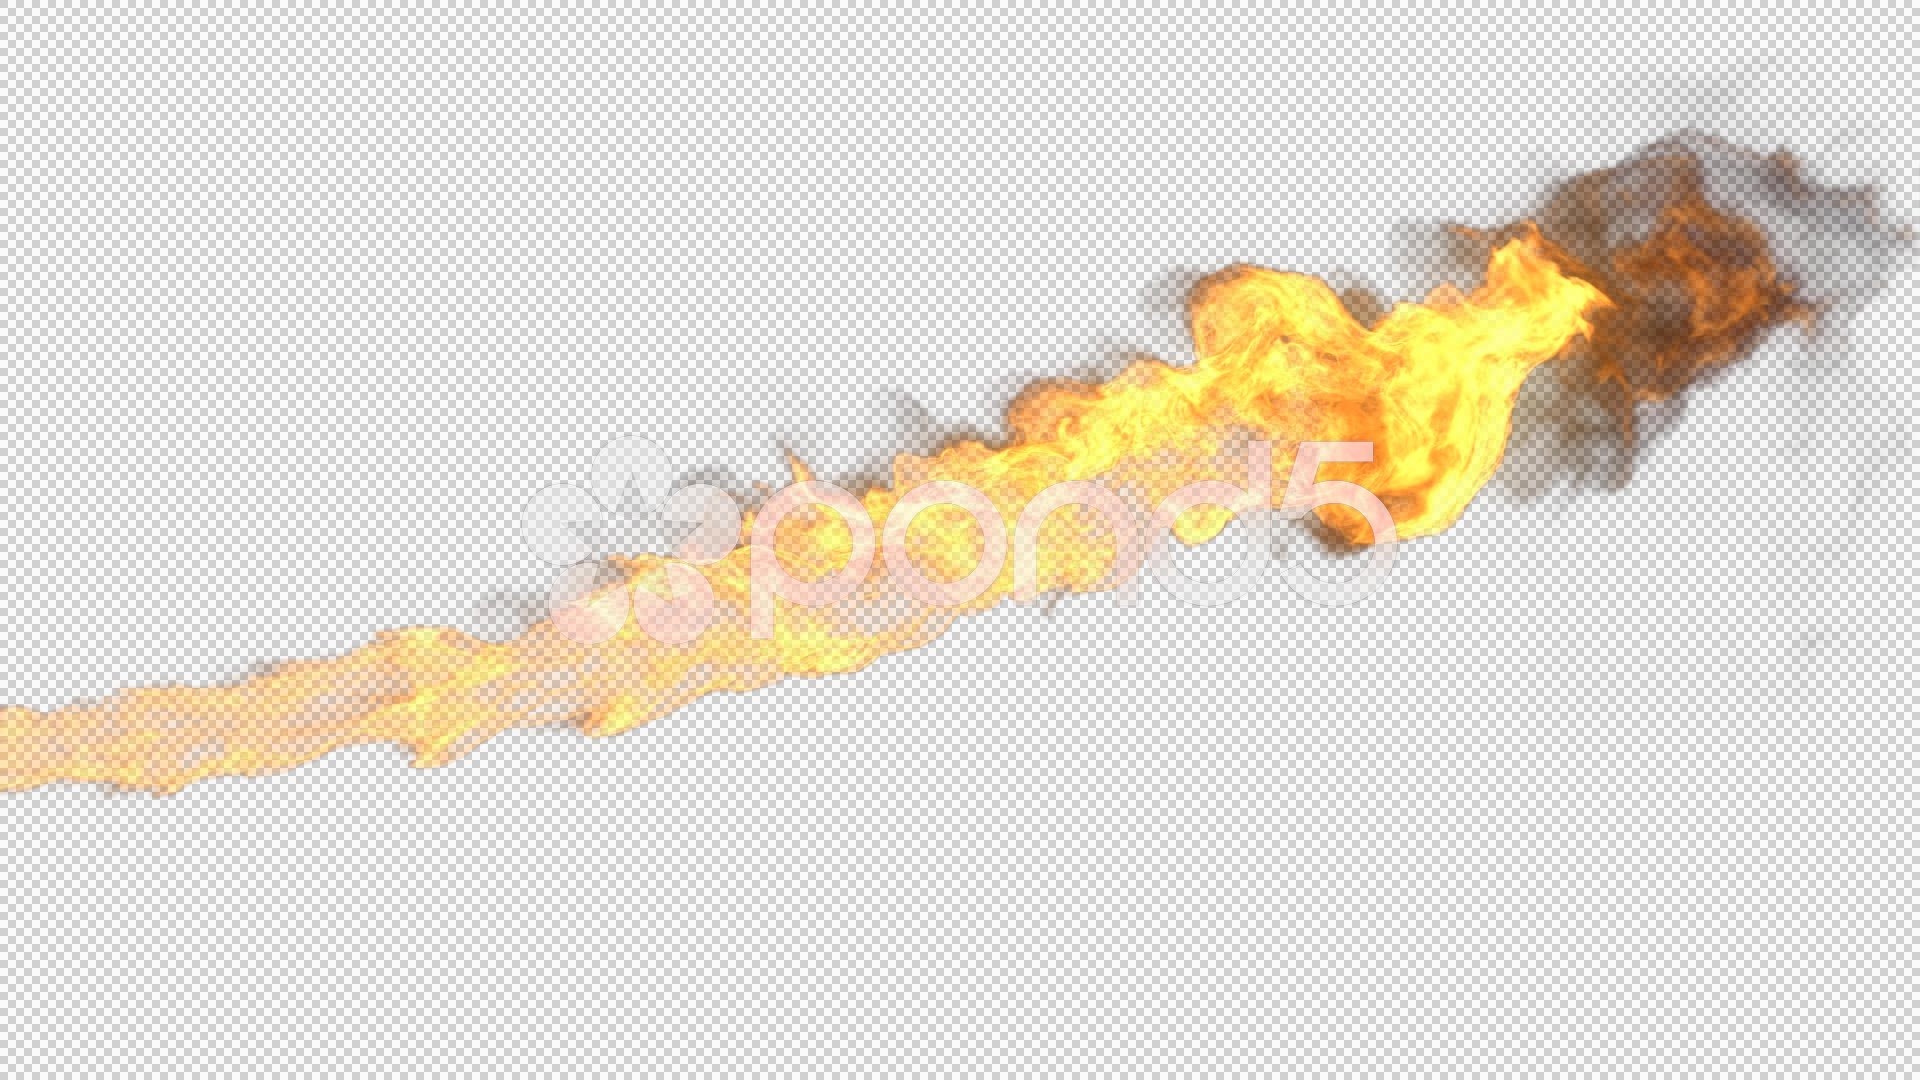 Fire Breath Png (112+ images in Collection) Page 3.